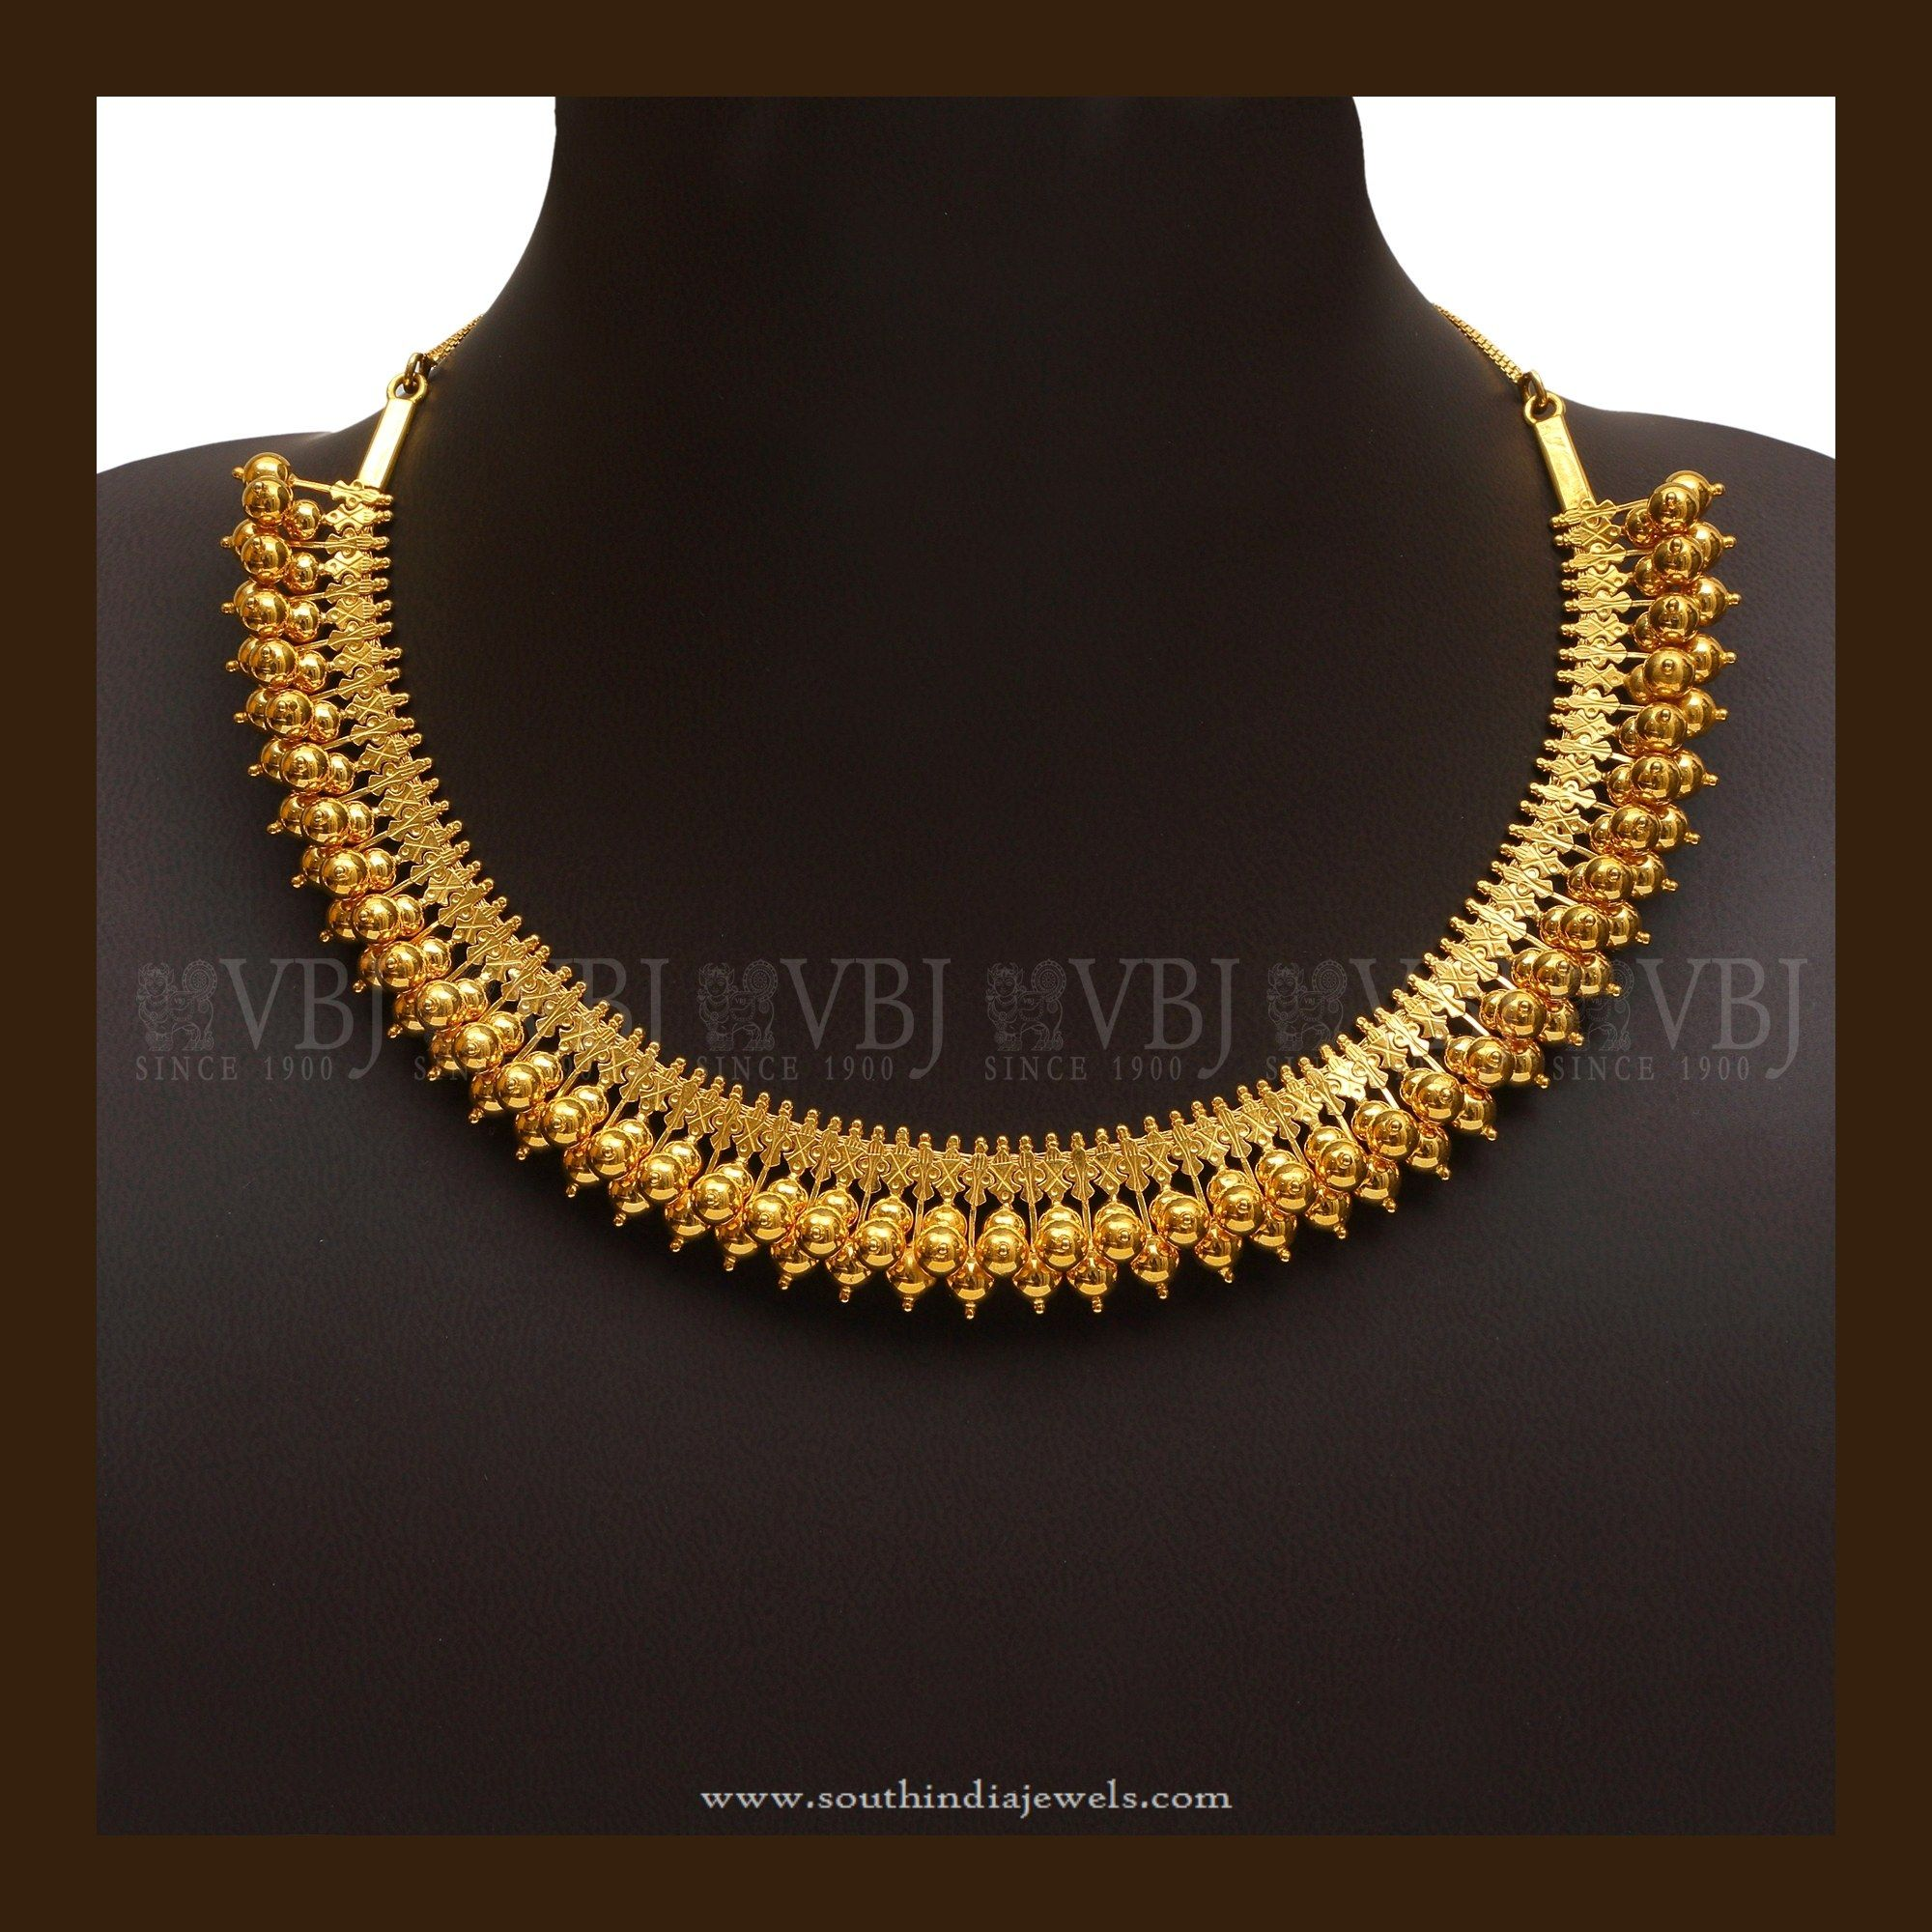 creative jos gold necklace designs inr alukkas jewellery price simple with la